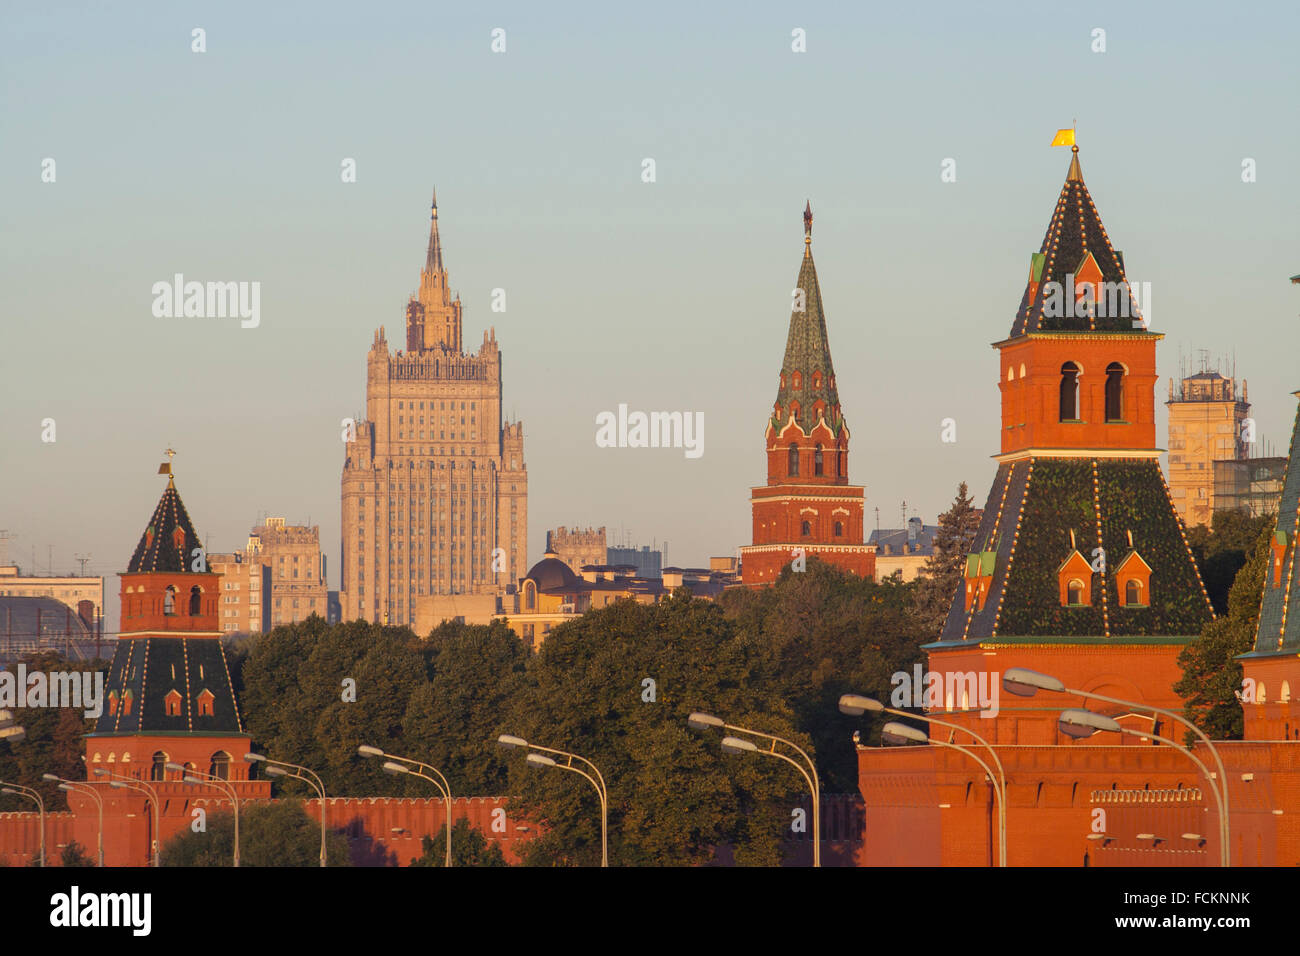 Kremlin wall and the Foreign Ministry, one of Stalin's Seven Sisters, early morning, Moscow, Russia Stock Photo